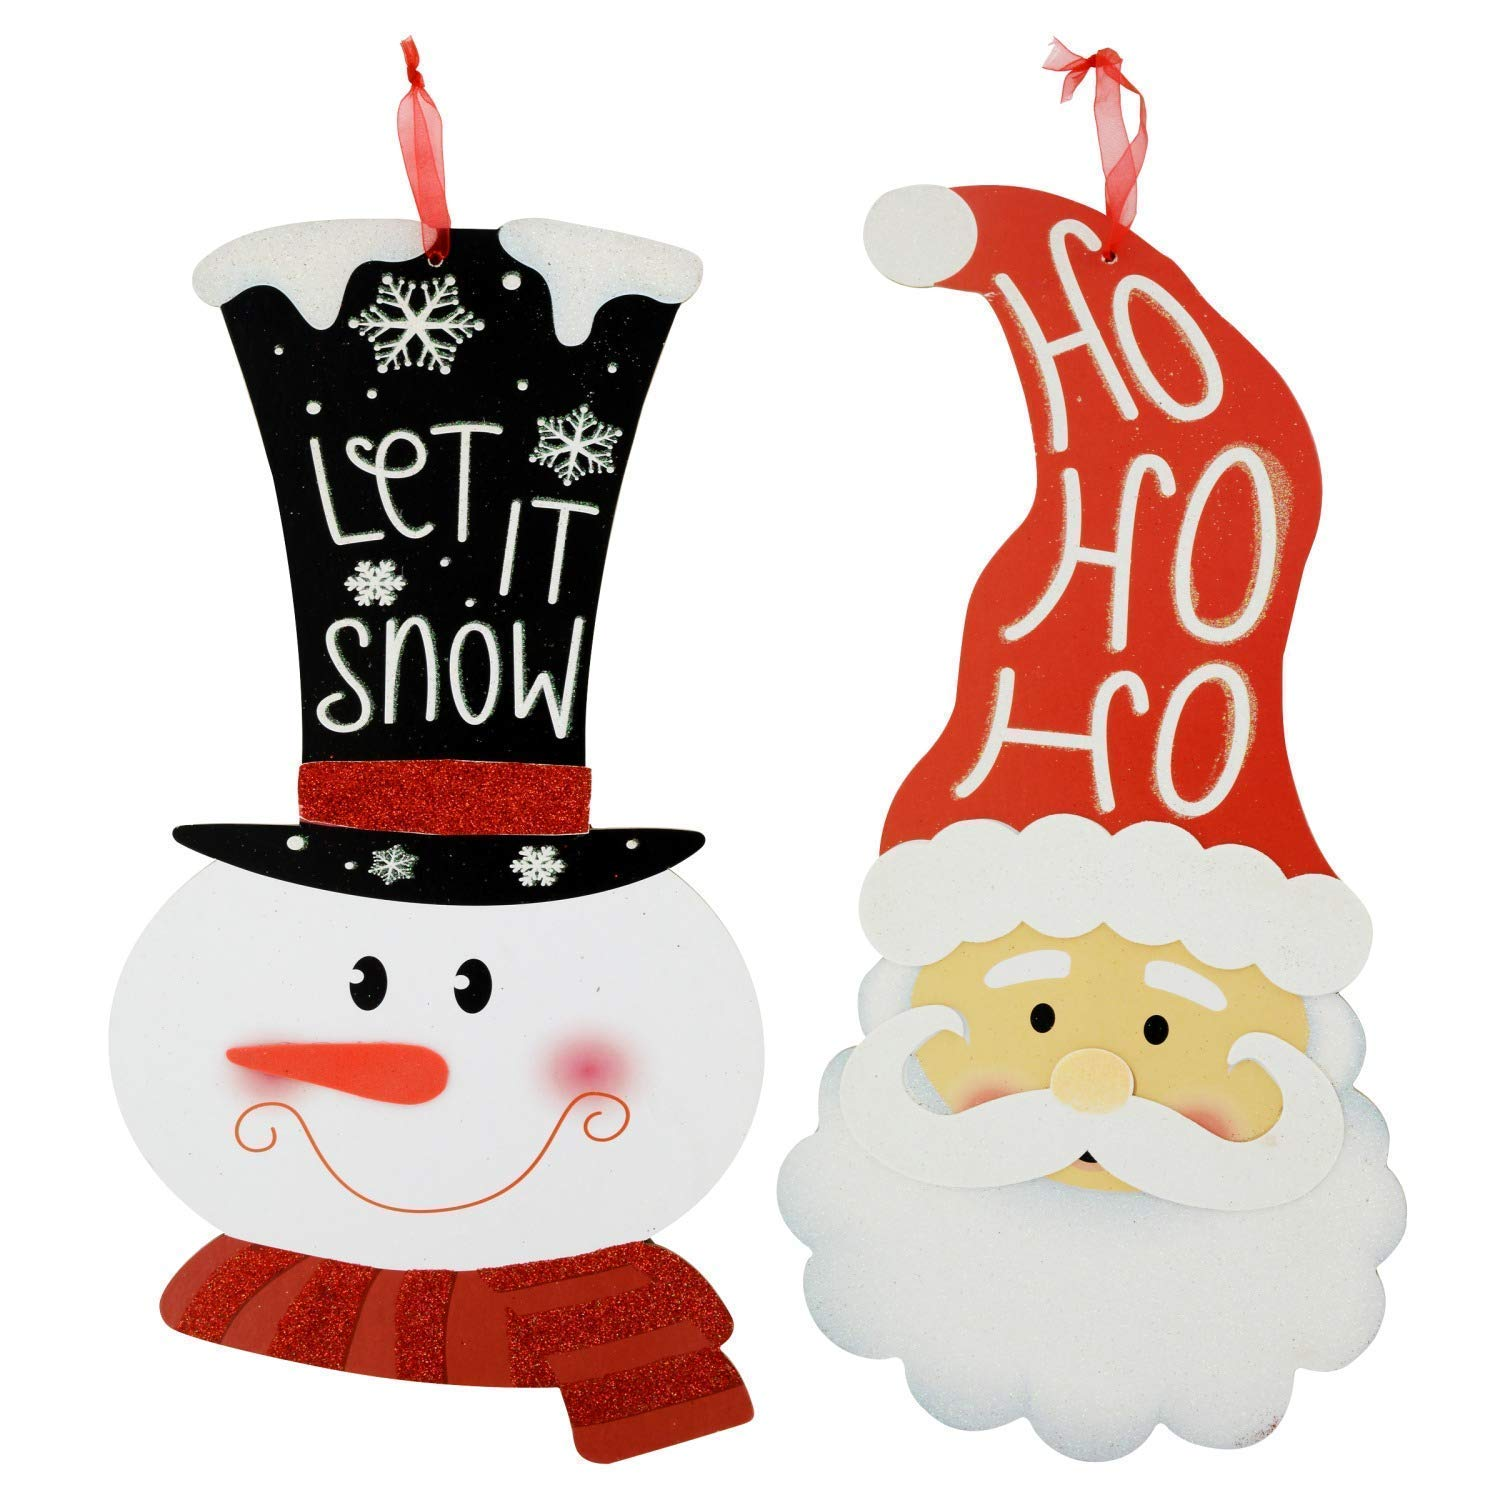 Christmas House Die-Cut MDF Wall Decorations Santa Snowman 2 Pack